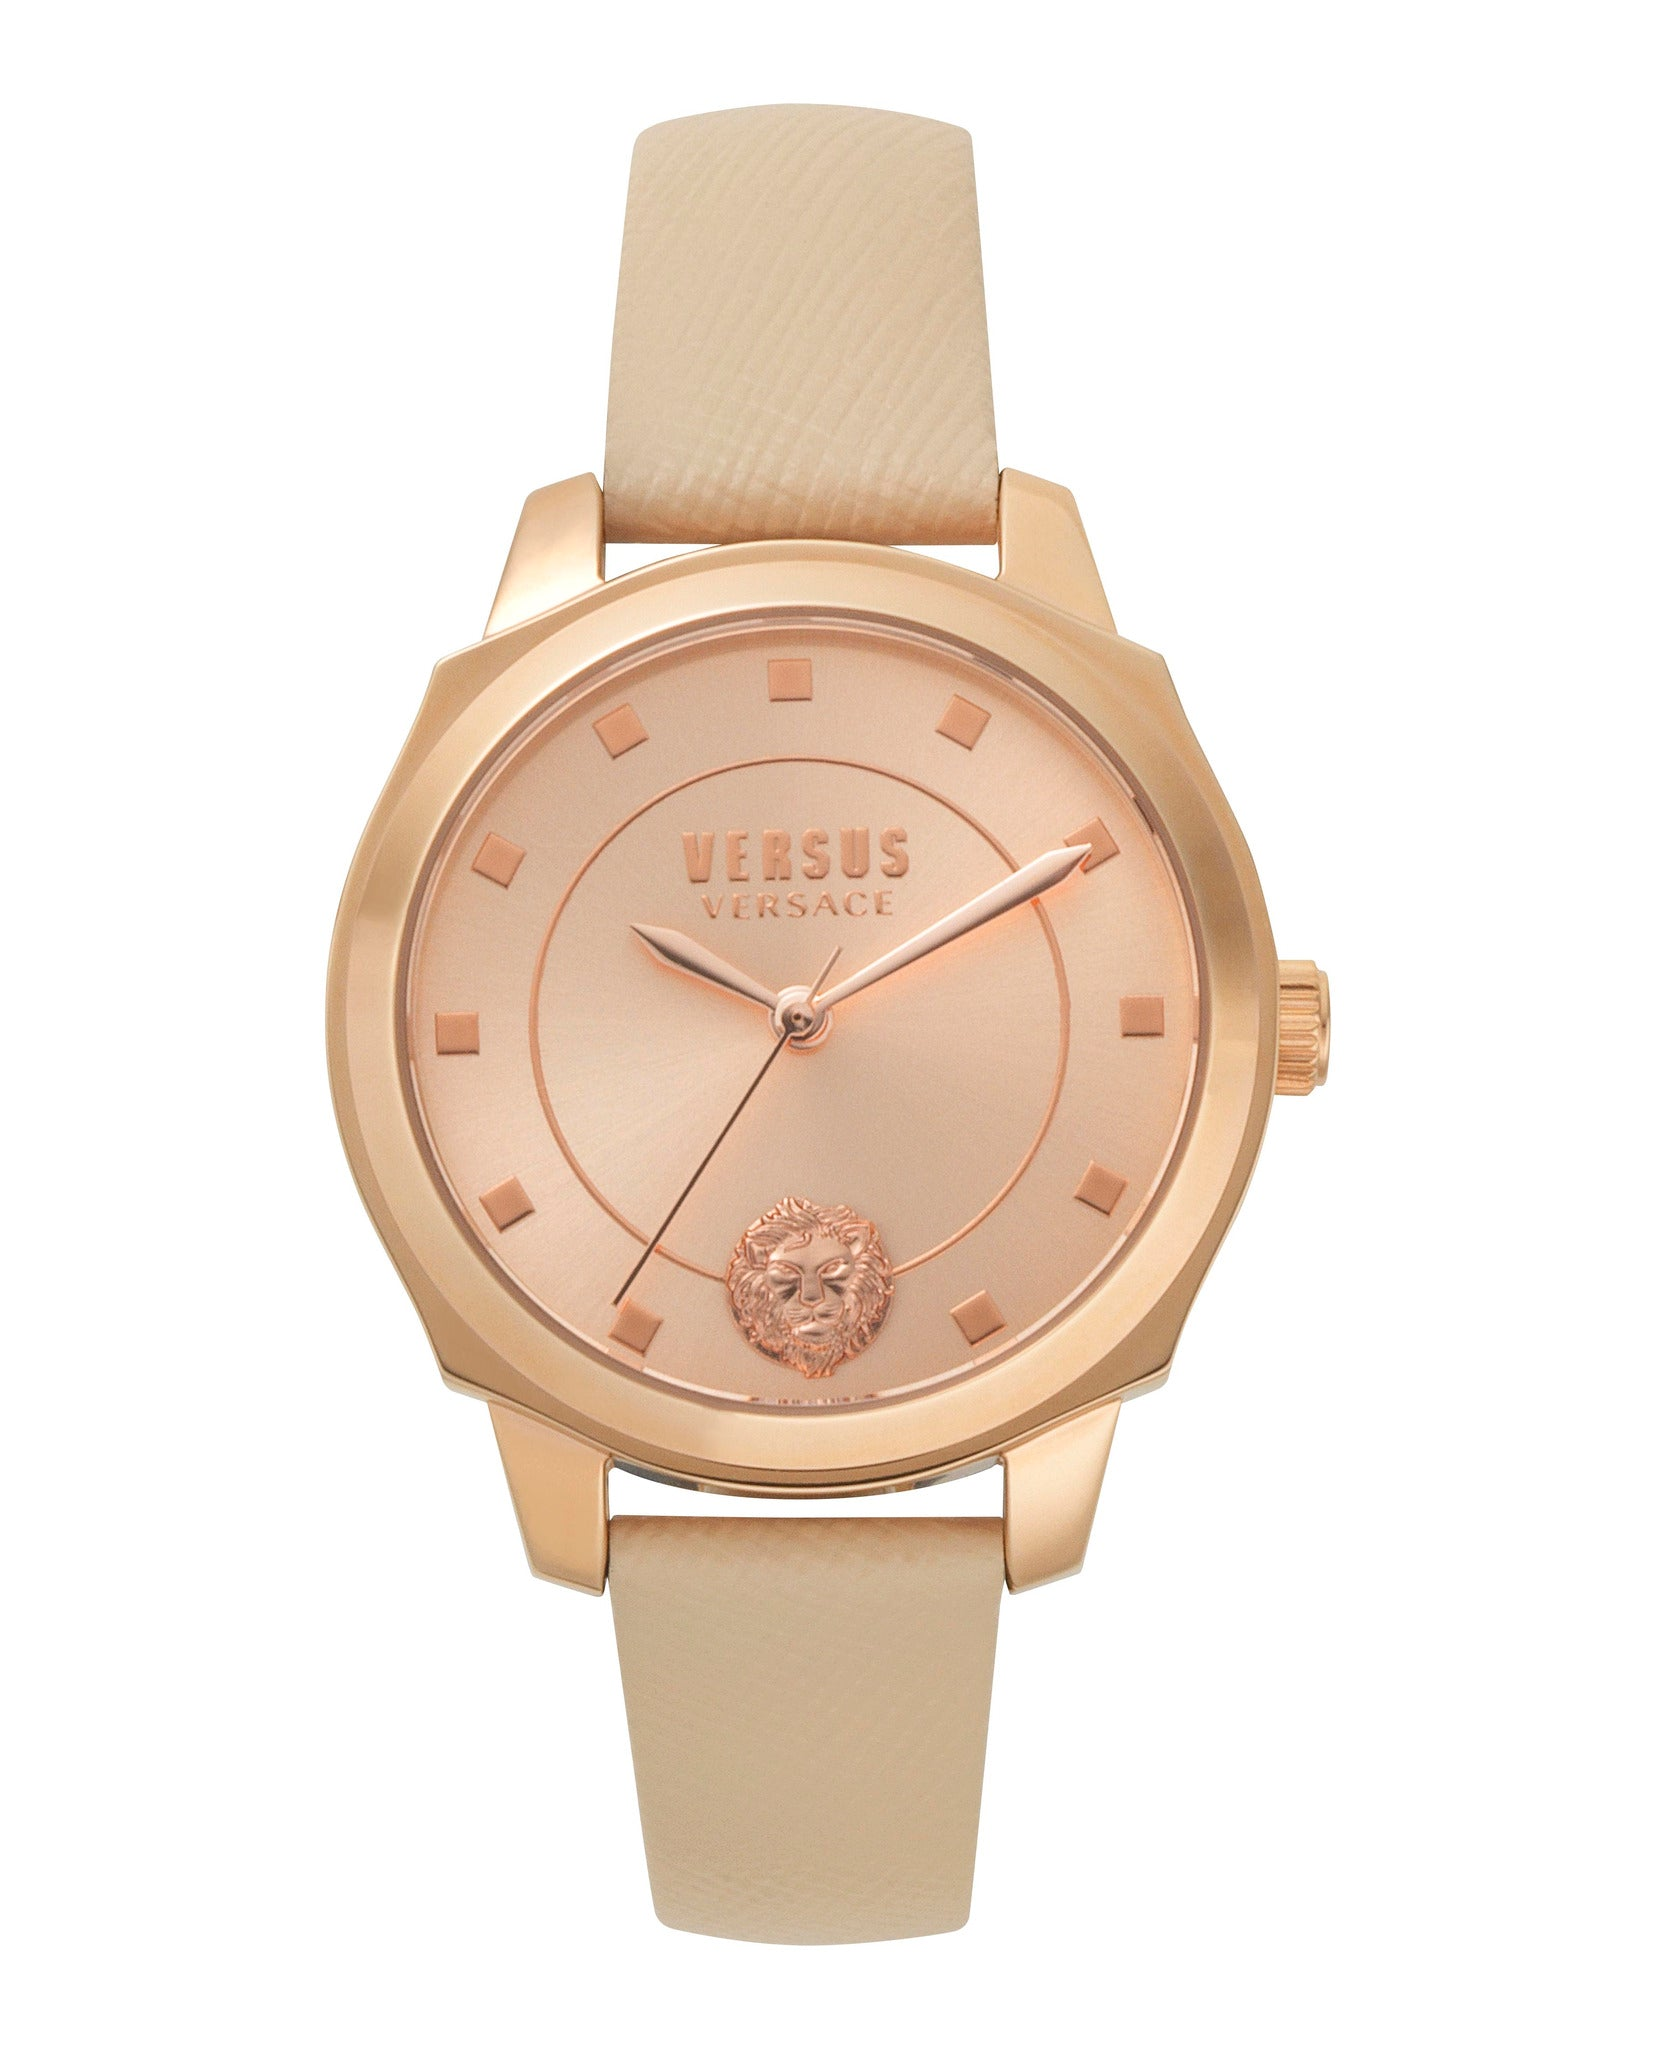 Versus Versace New Chelsea Watch